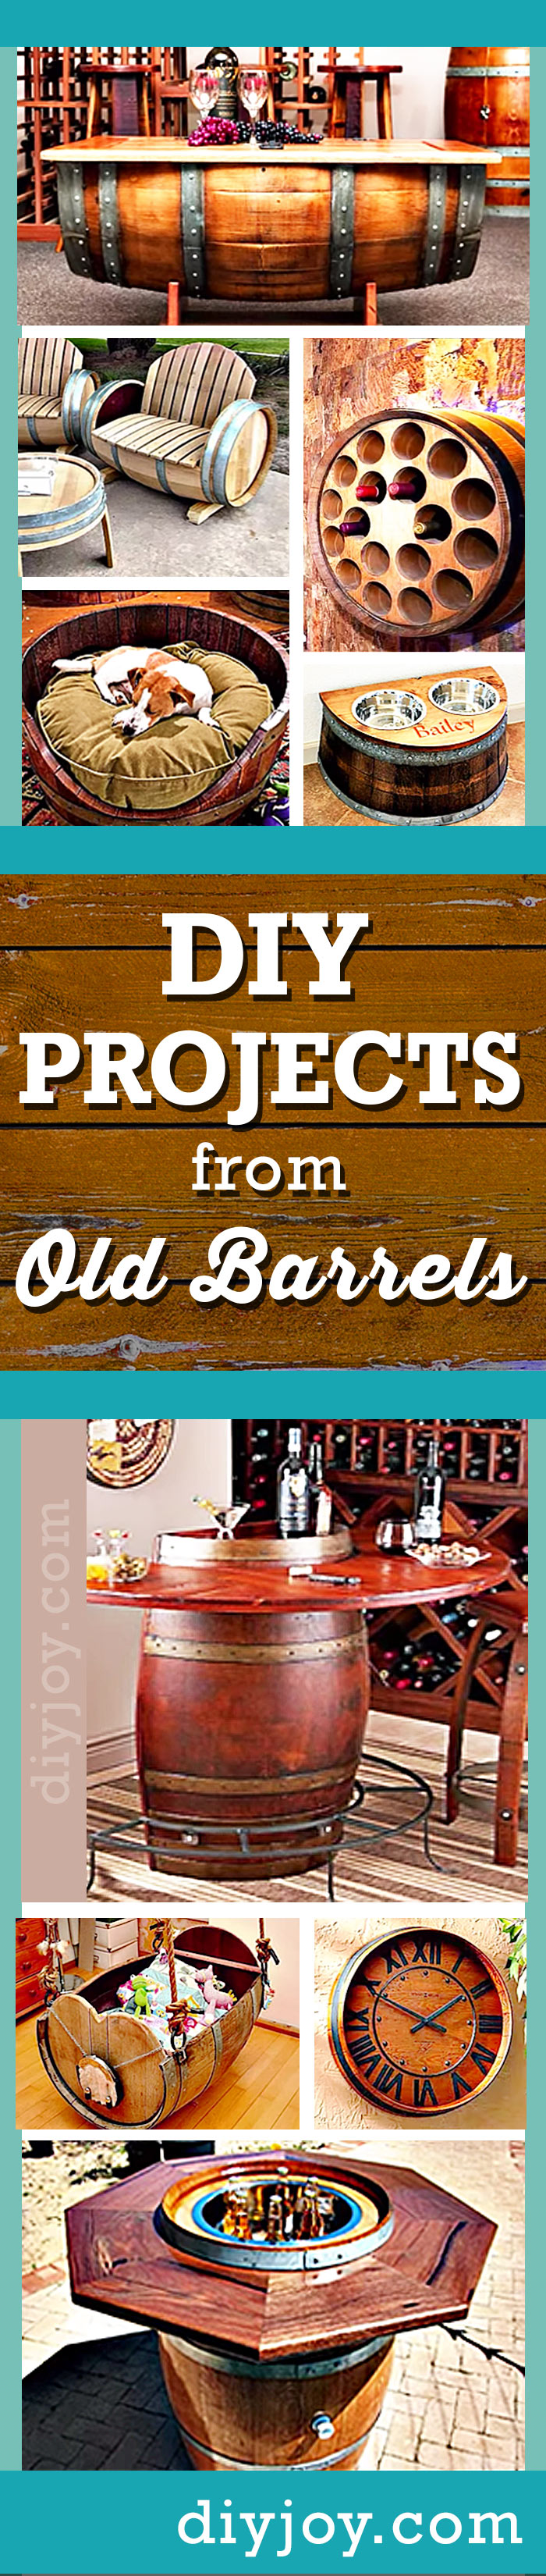 DIY Projects Made From Old Barrels | Cool DIY Furniture and Decor Ideas at DIY Joy